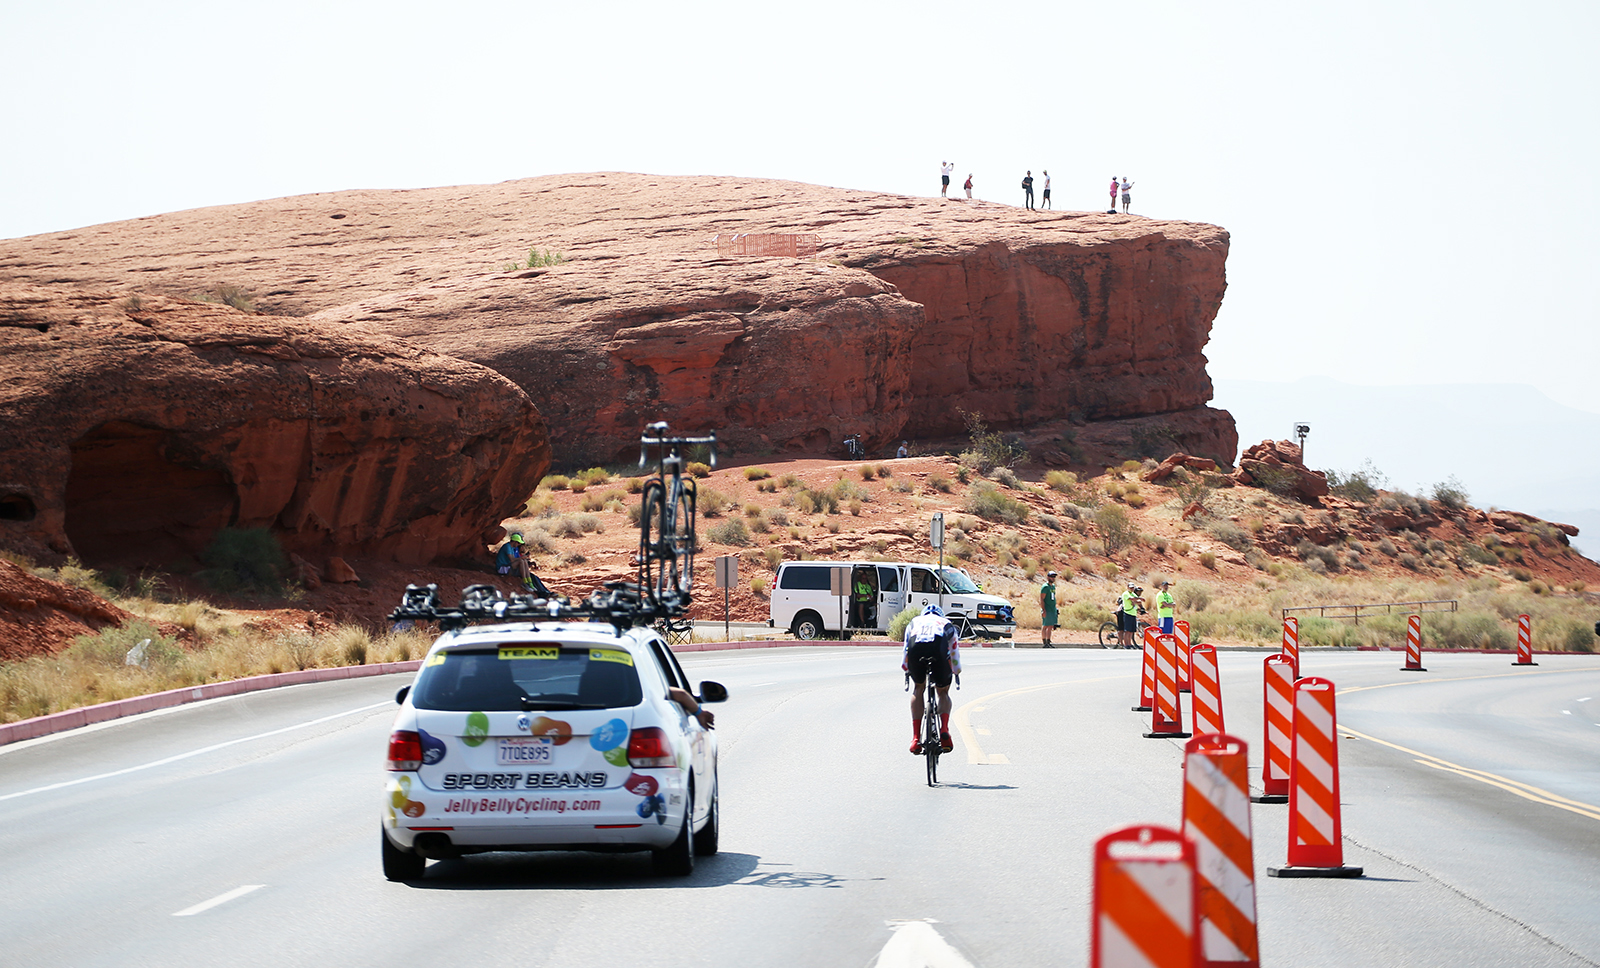 Some fans climbed up to higher grounds to spectate the Prologue. 2018 Tour of Utah Team Prologue, August 6, 2018, St. George, Utah. Photo by Cathy Fegan-Kim, cottonsoxphotography.net